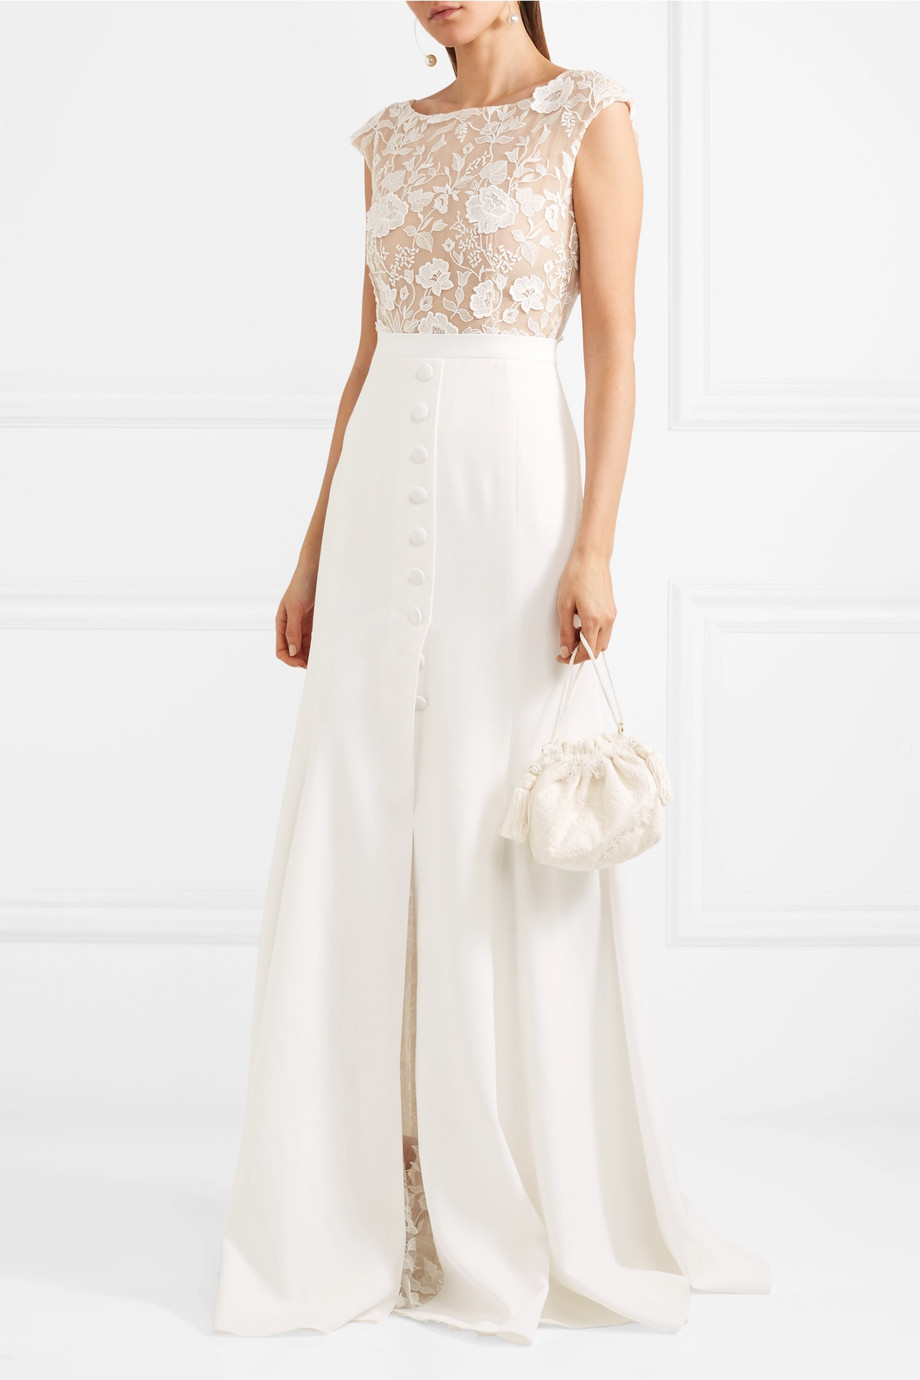 Rime Arodaky Sewell lace and crepe gown